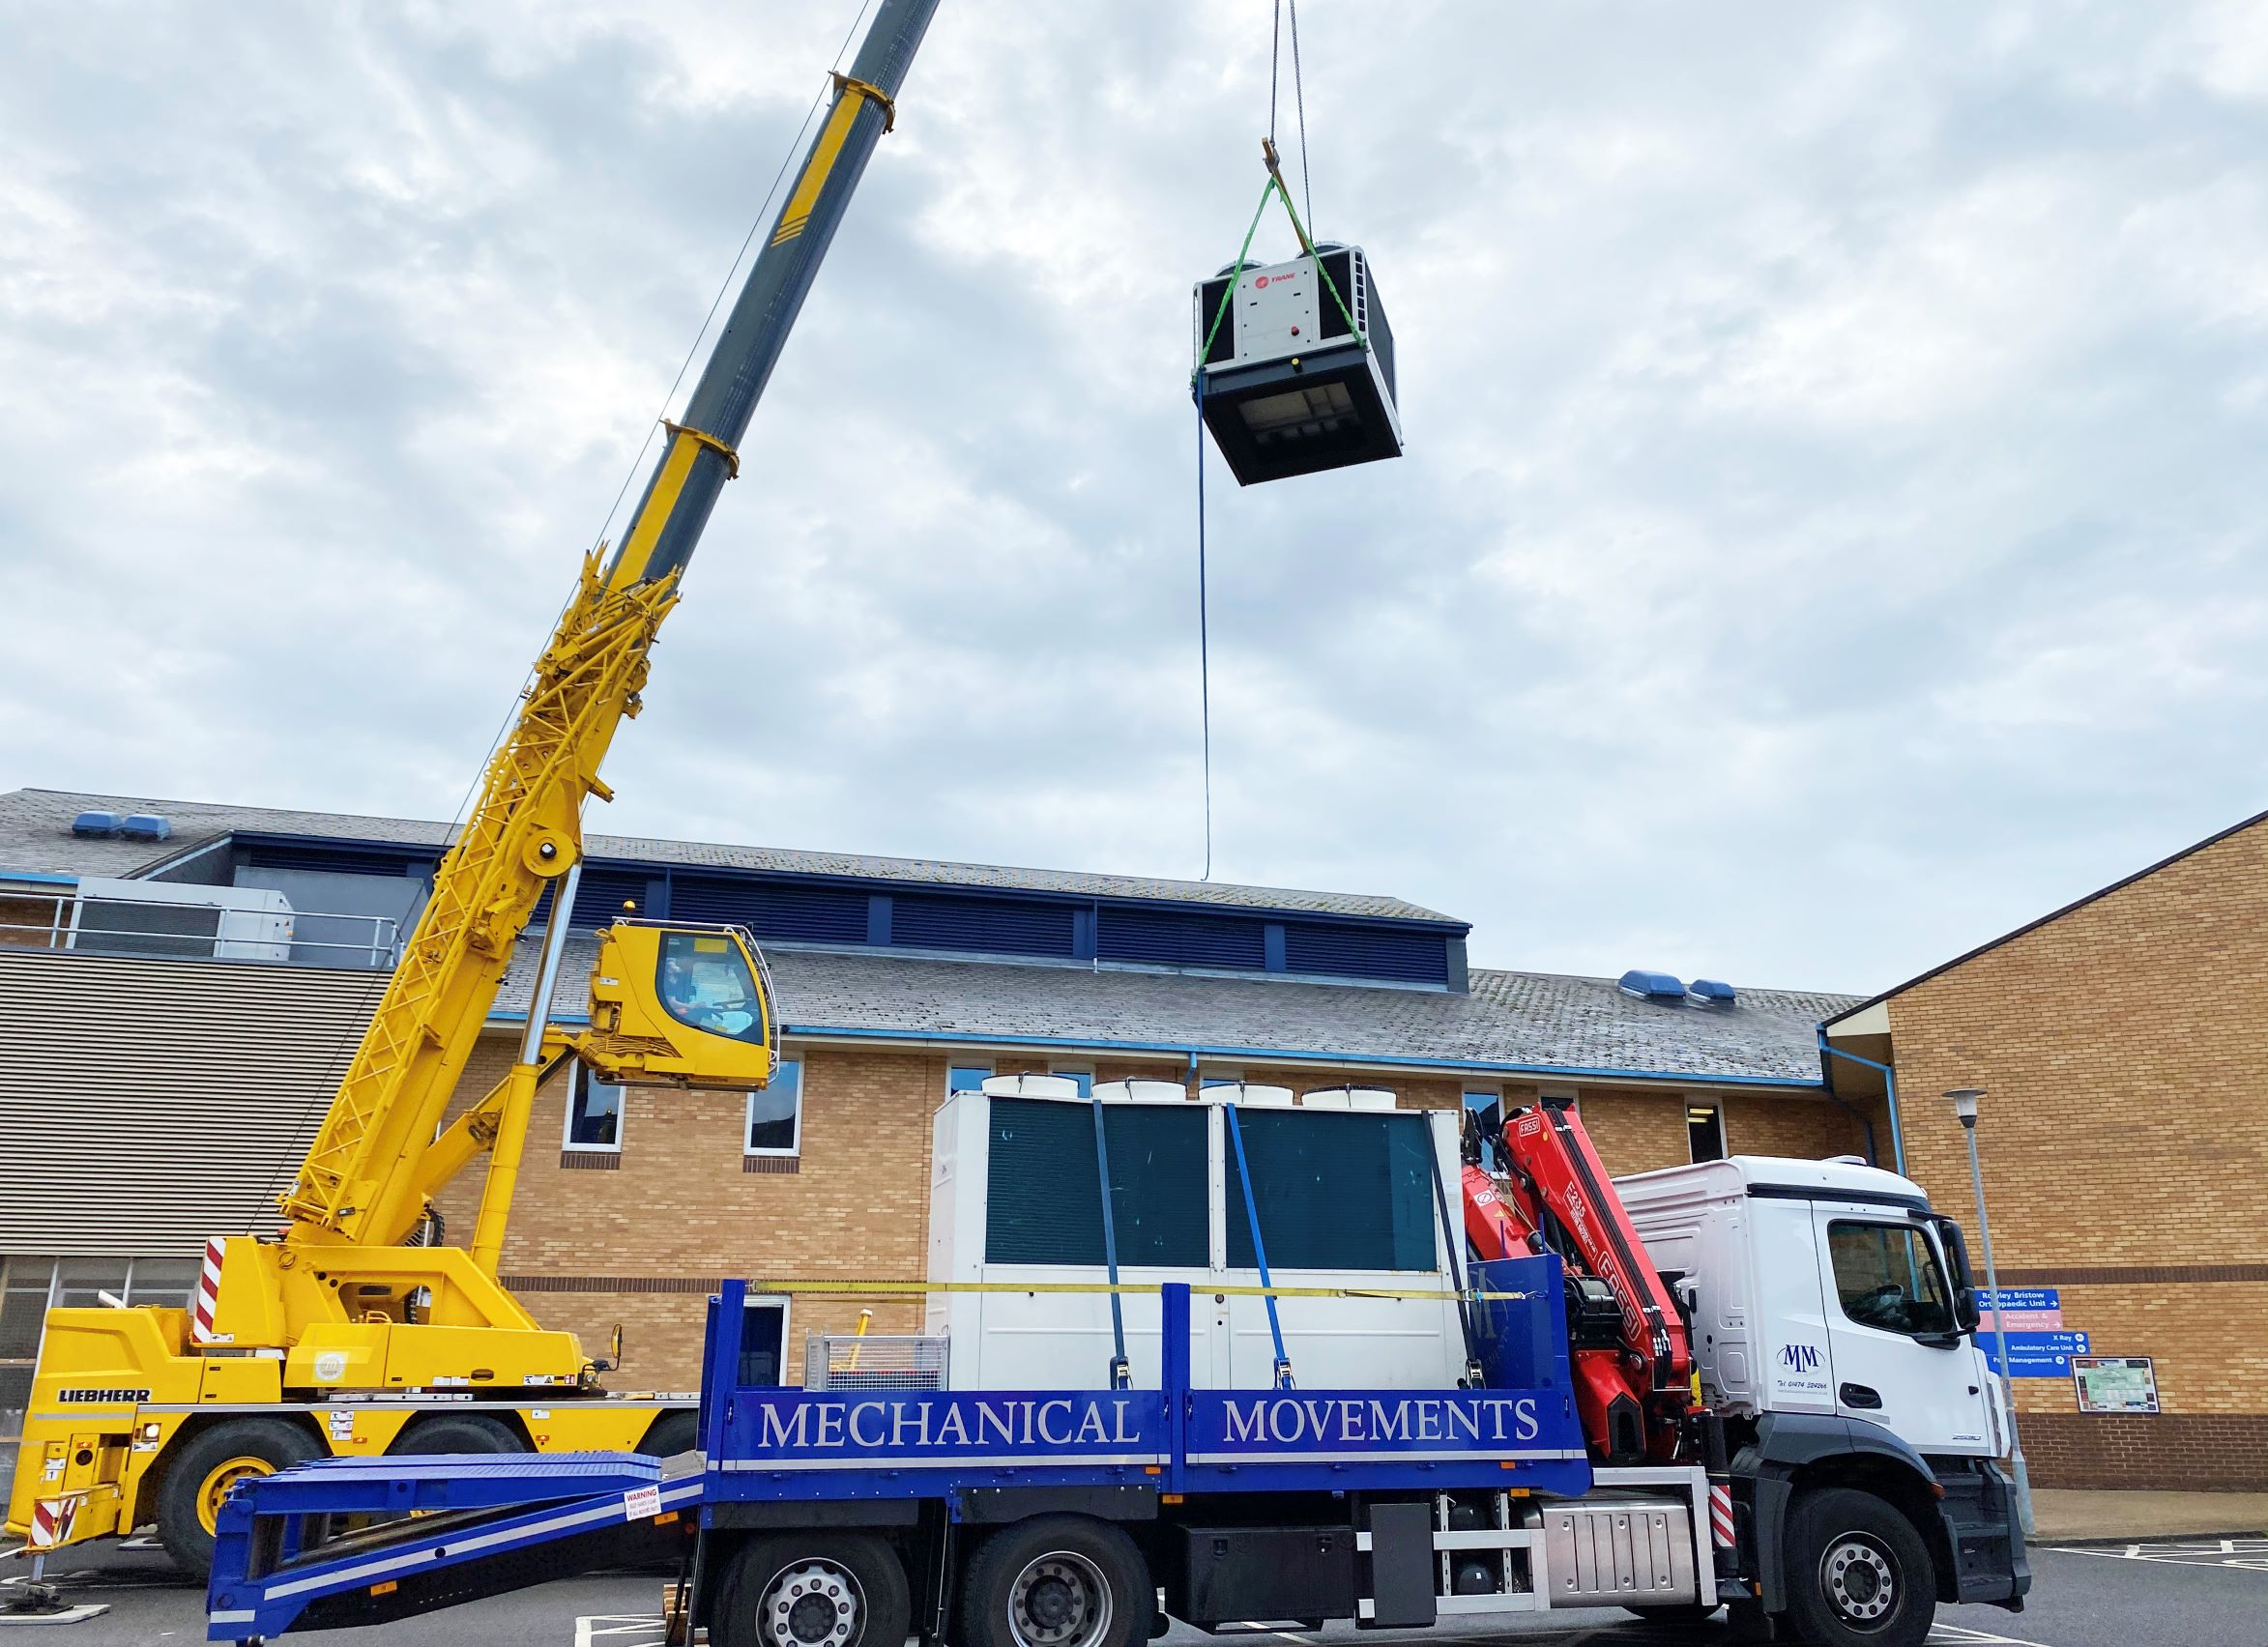 Chillers in Chertsey – Special Delivery at St Peter's Hospital